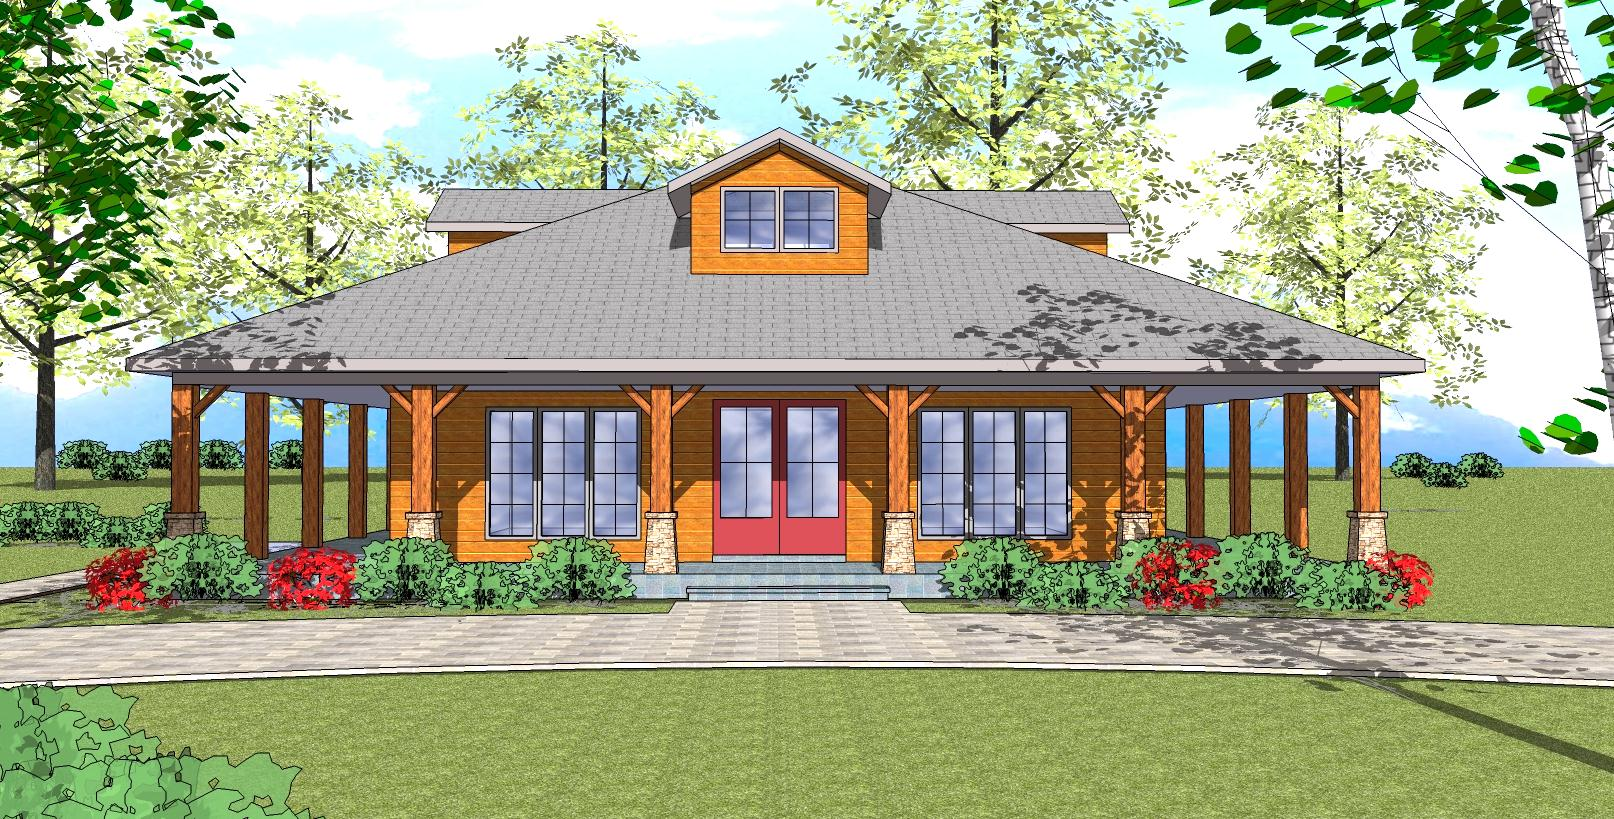 southern house plan 155 1008 2 bedrm 1225 sq ft home